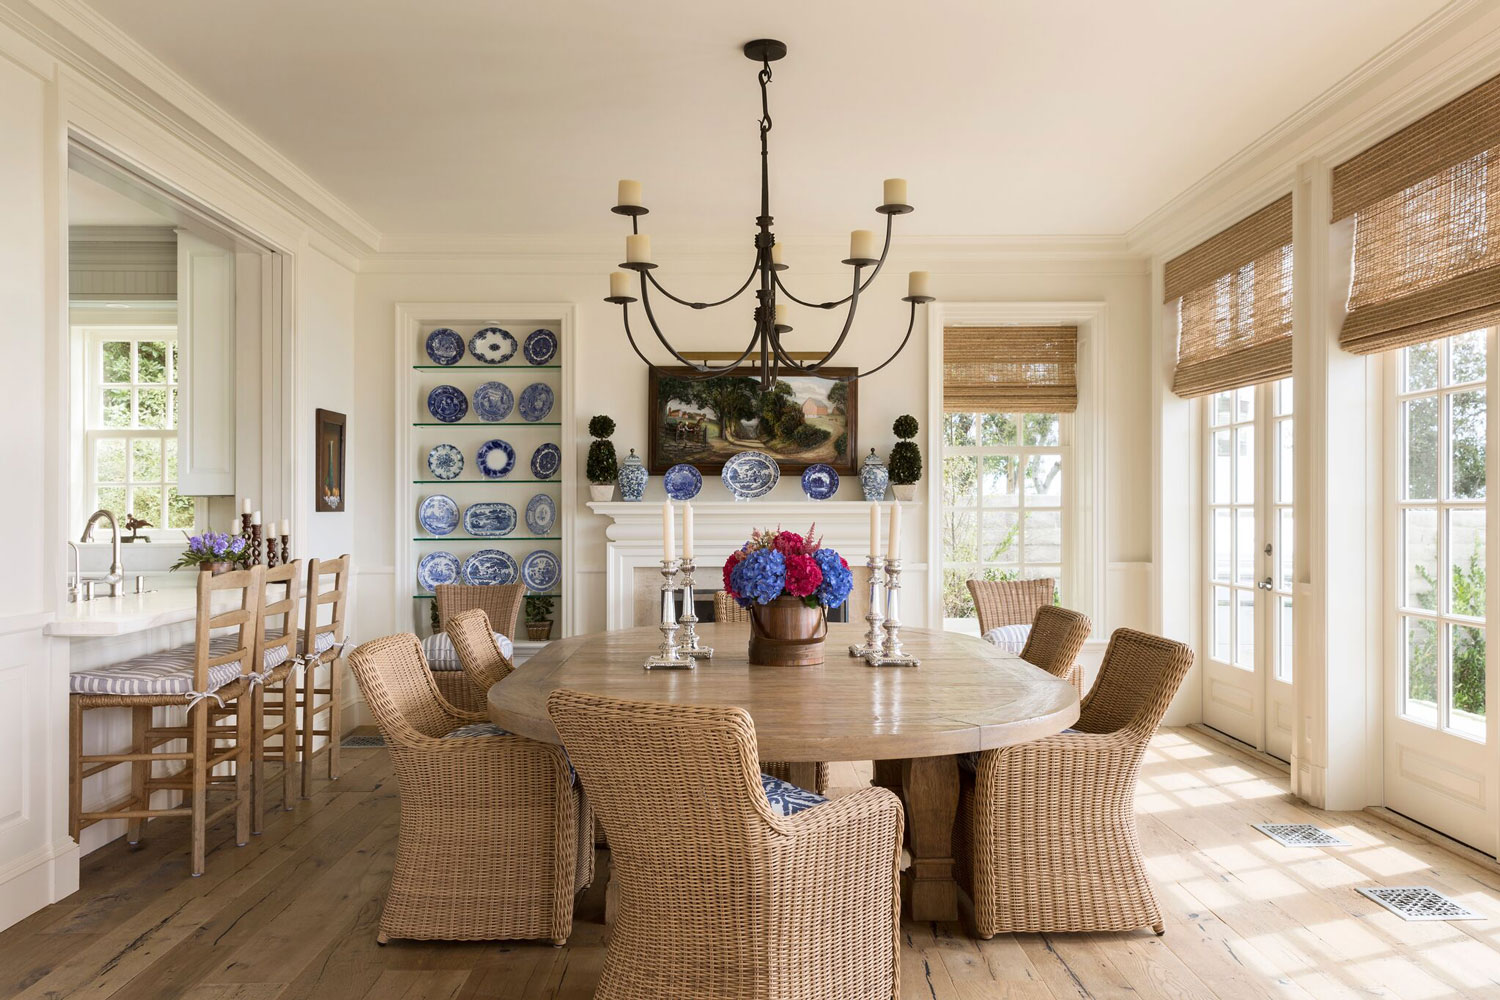 7-katz-dining-room-wicker-chairs-traditional.jpg